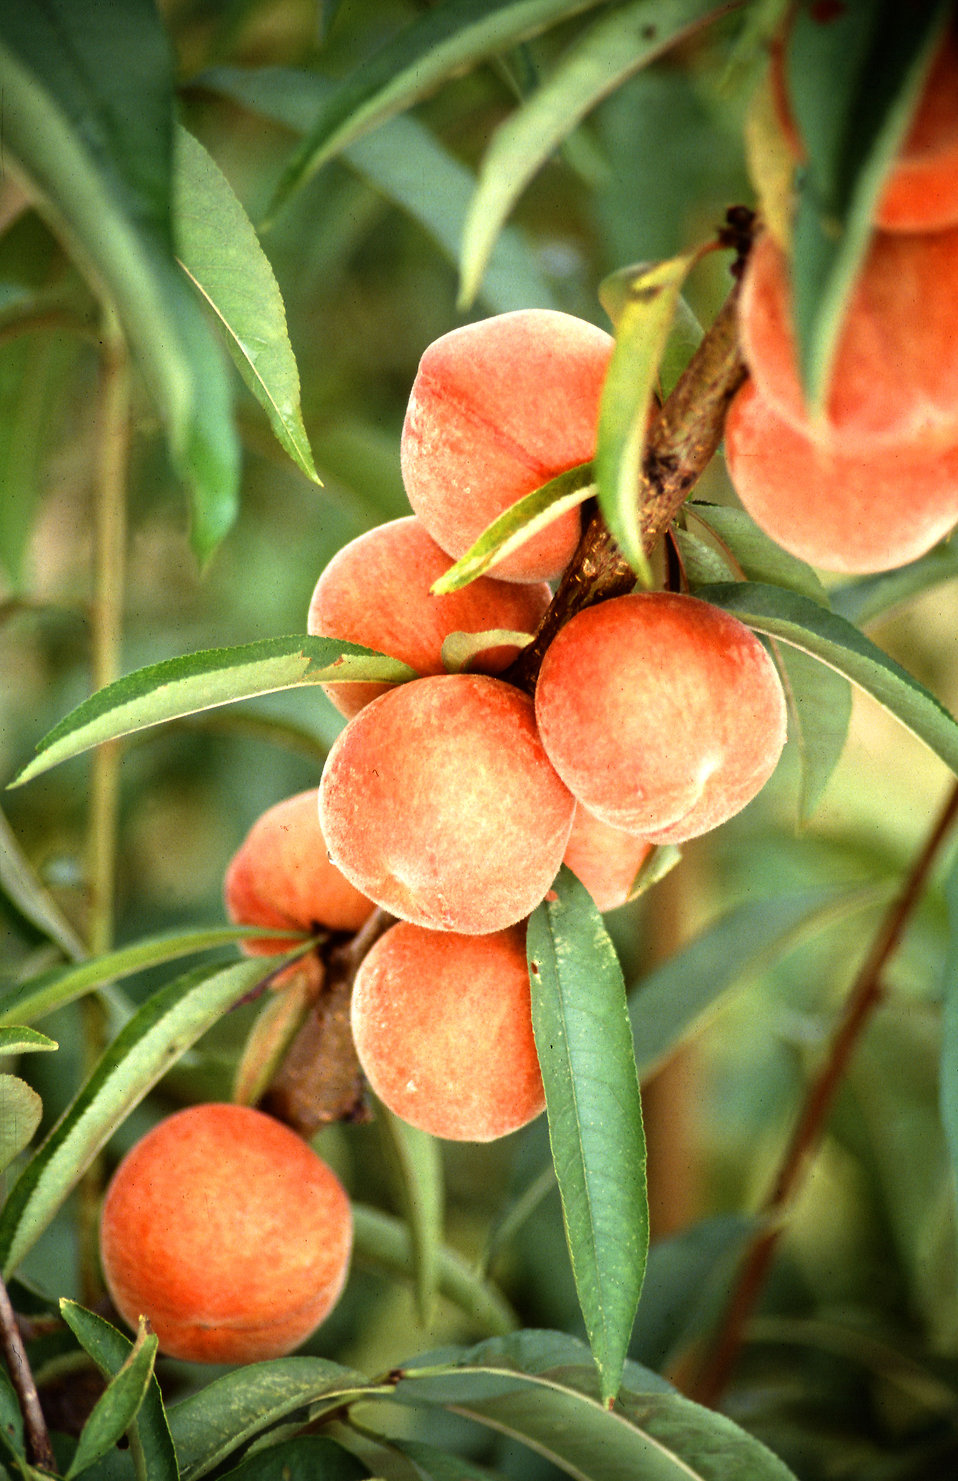 Flameprince peaches growing on a tree : Free Stock Photo